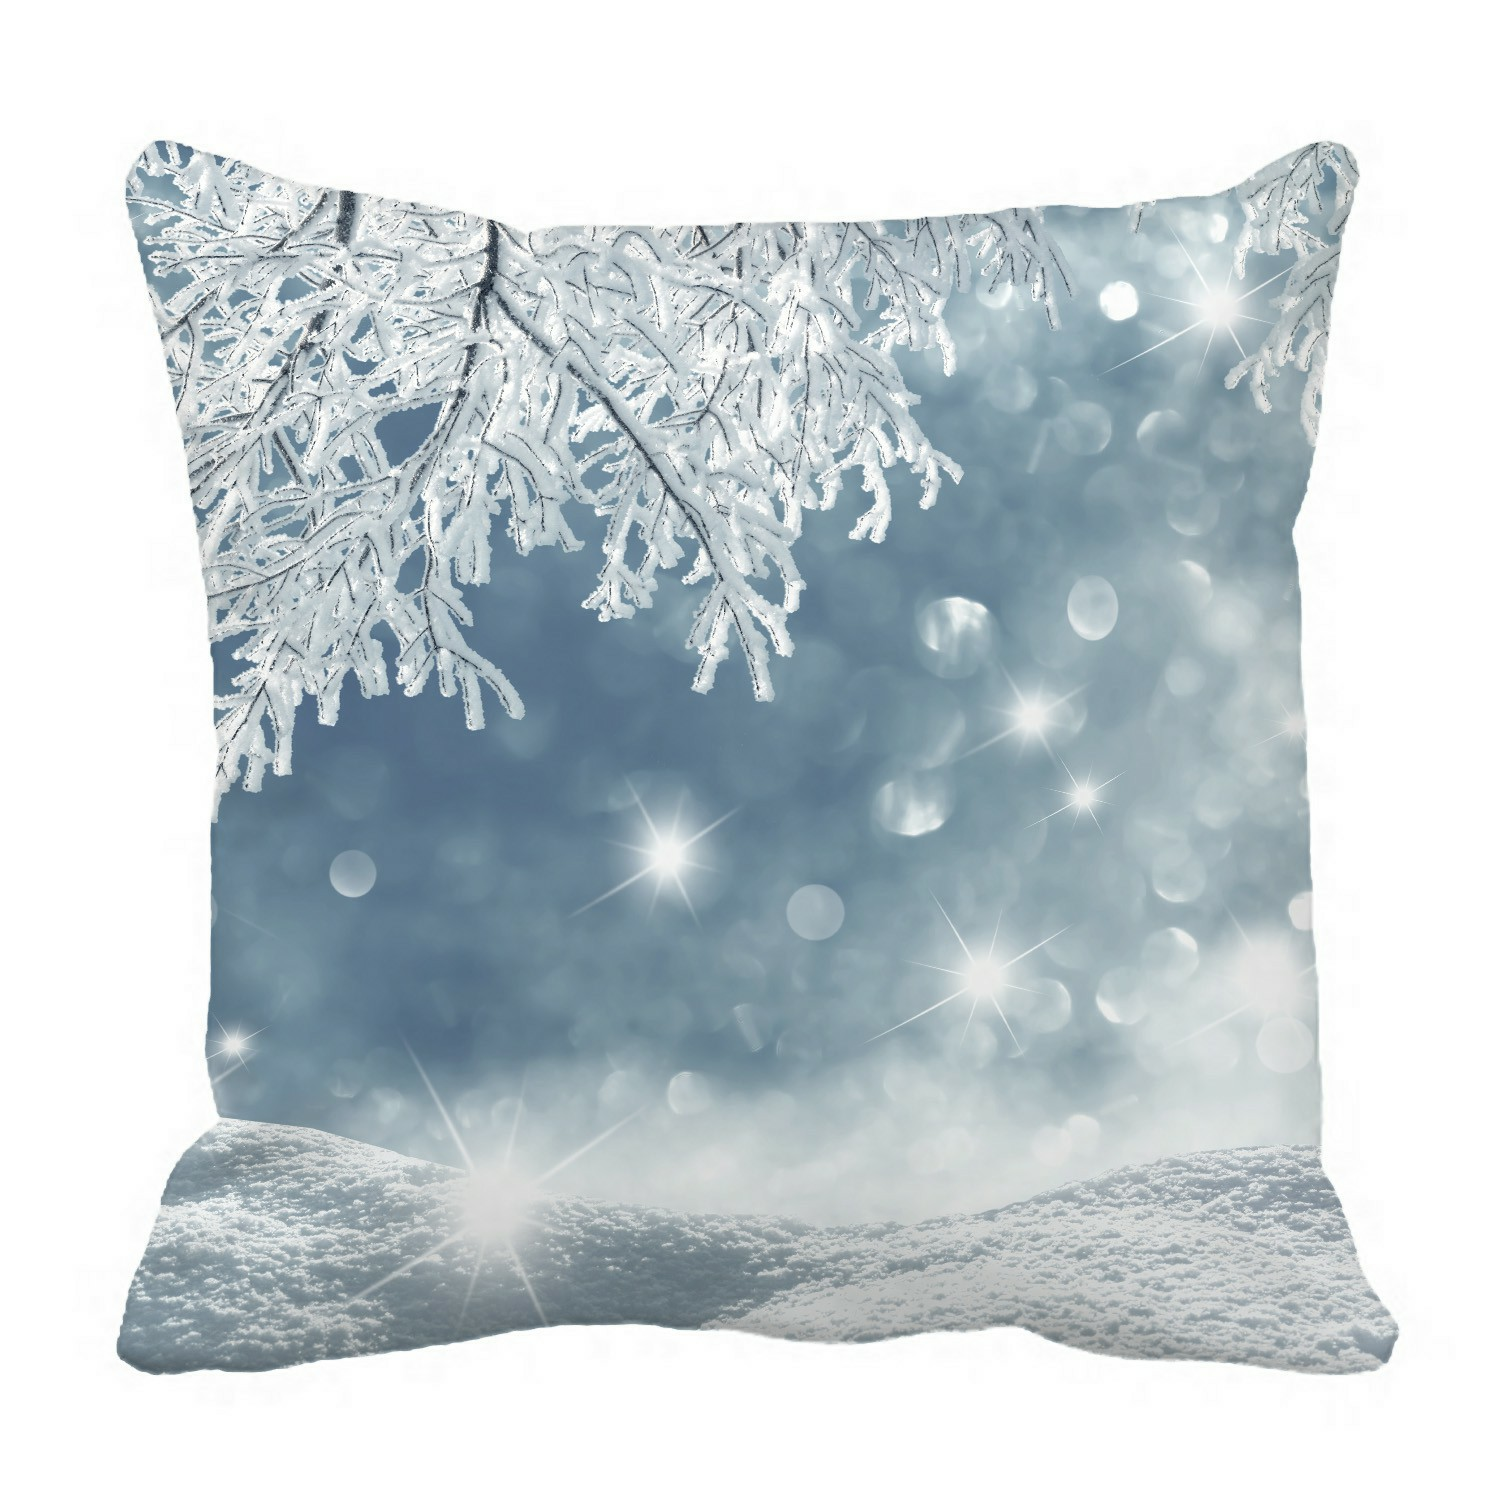 eczjnt winter pillow case pillow cover cushion cover 16x16 inch